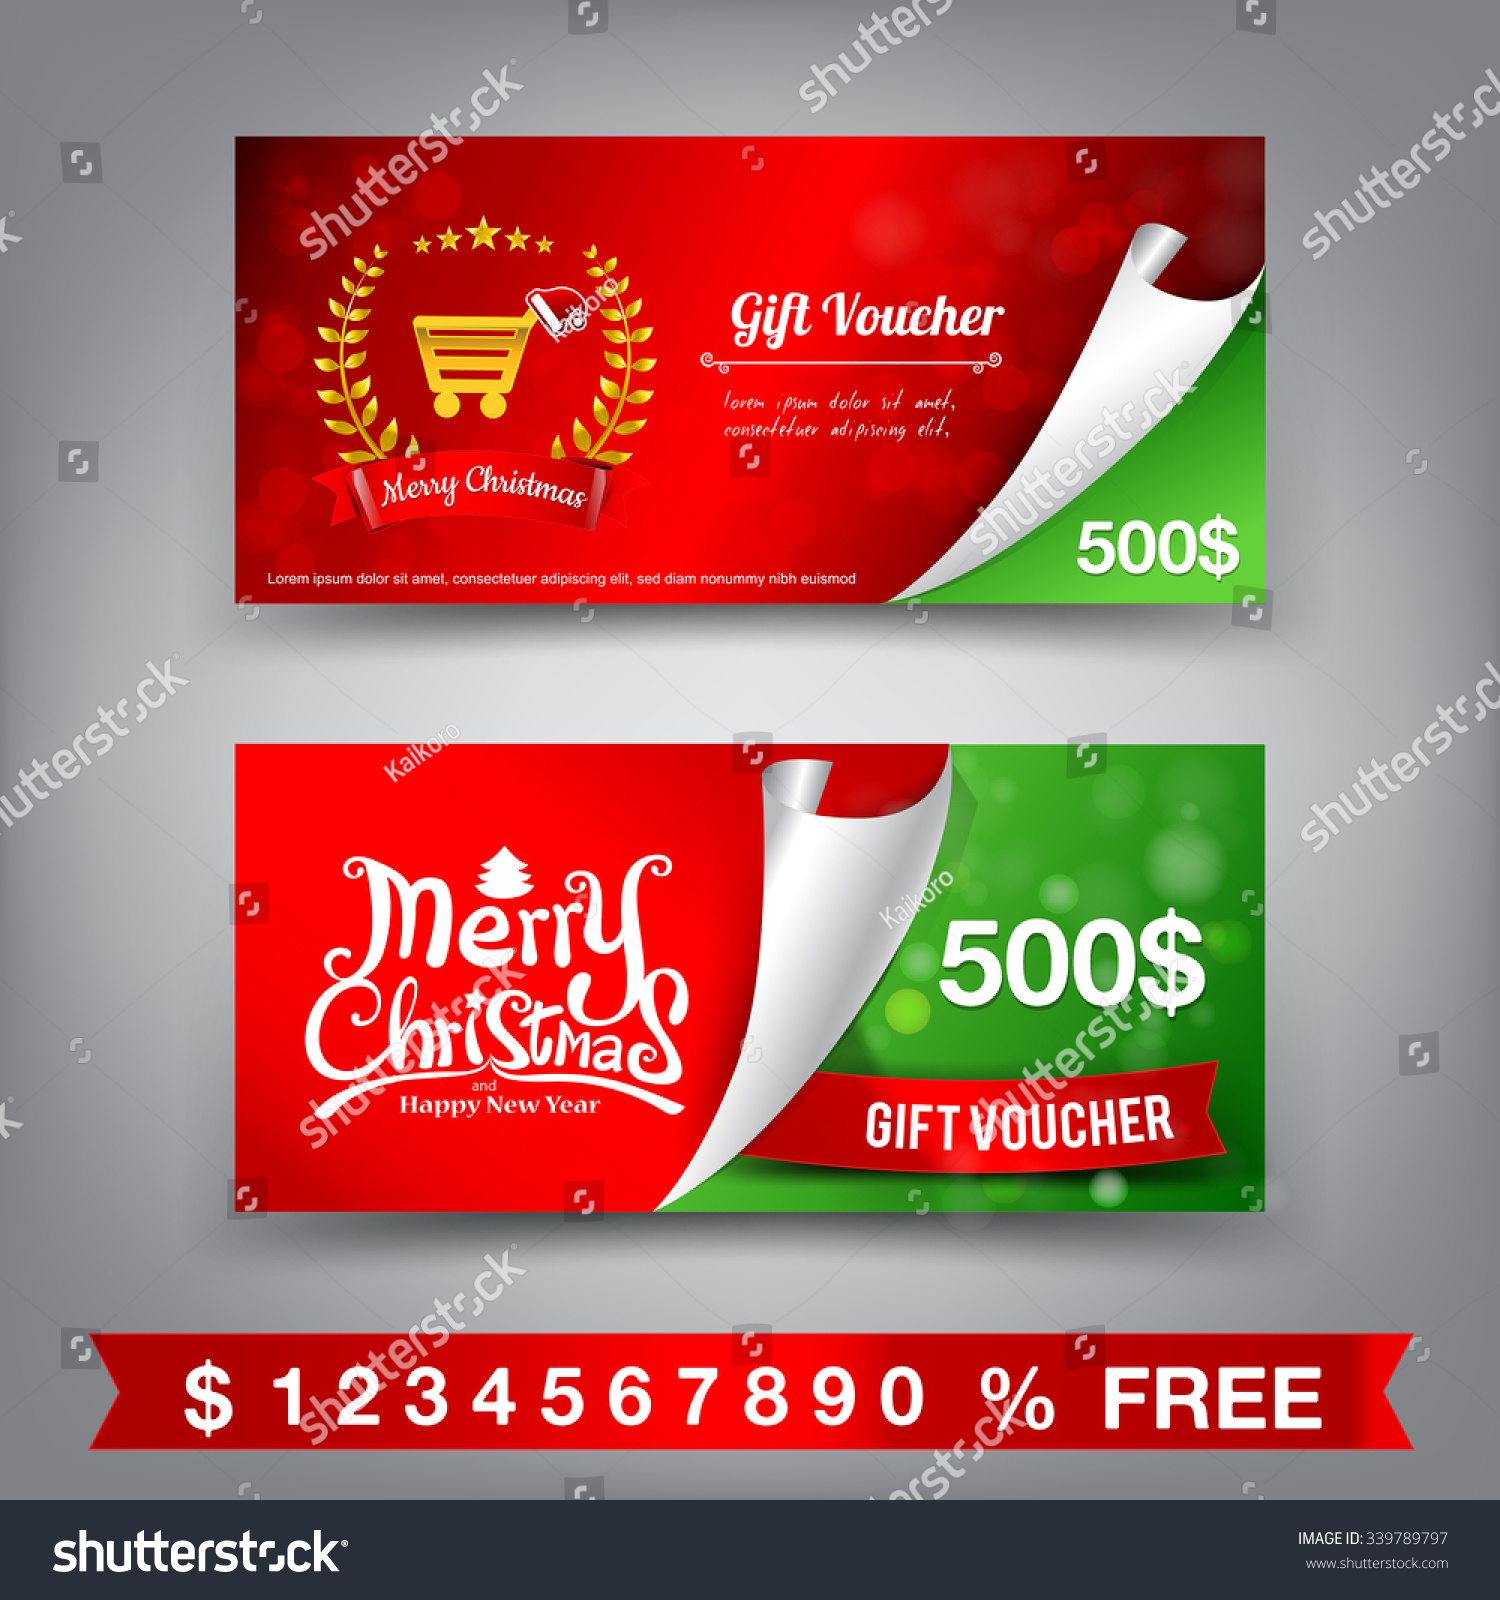 merry christmas gift voucher template vector illustration eps merry christmas gift voucher template vector illustration eps10 preview save to a lightbox